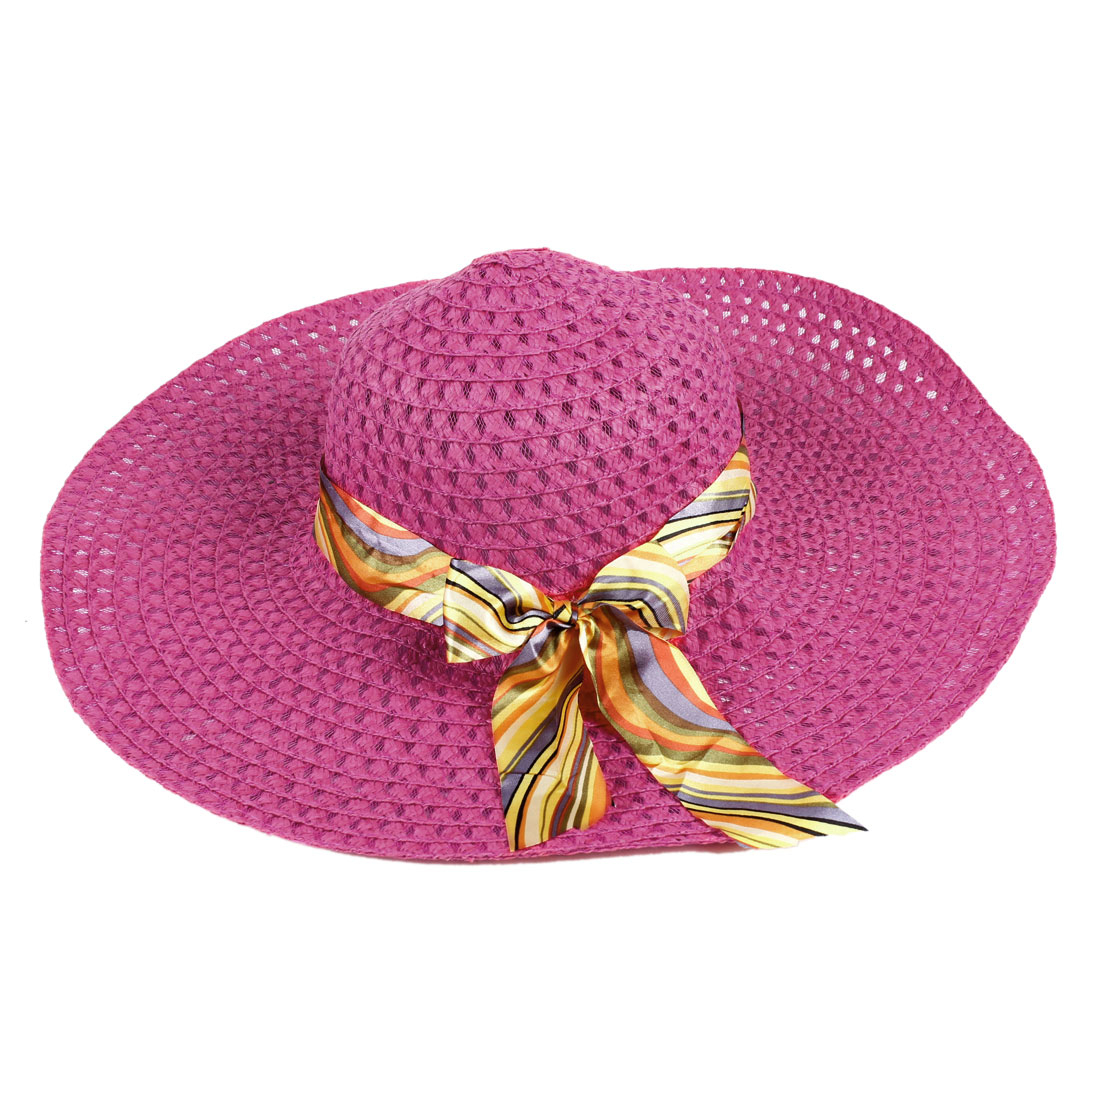 Ladies Fuchsia Elastic Neck Strap Bowknot Detail Beach Straw Hat